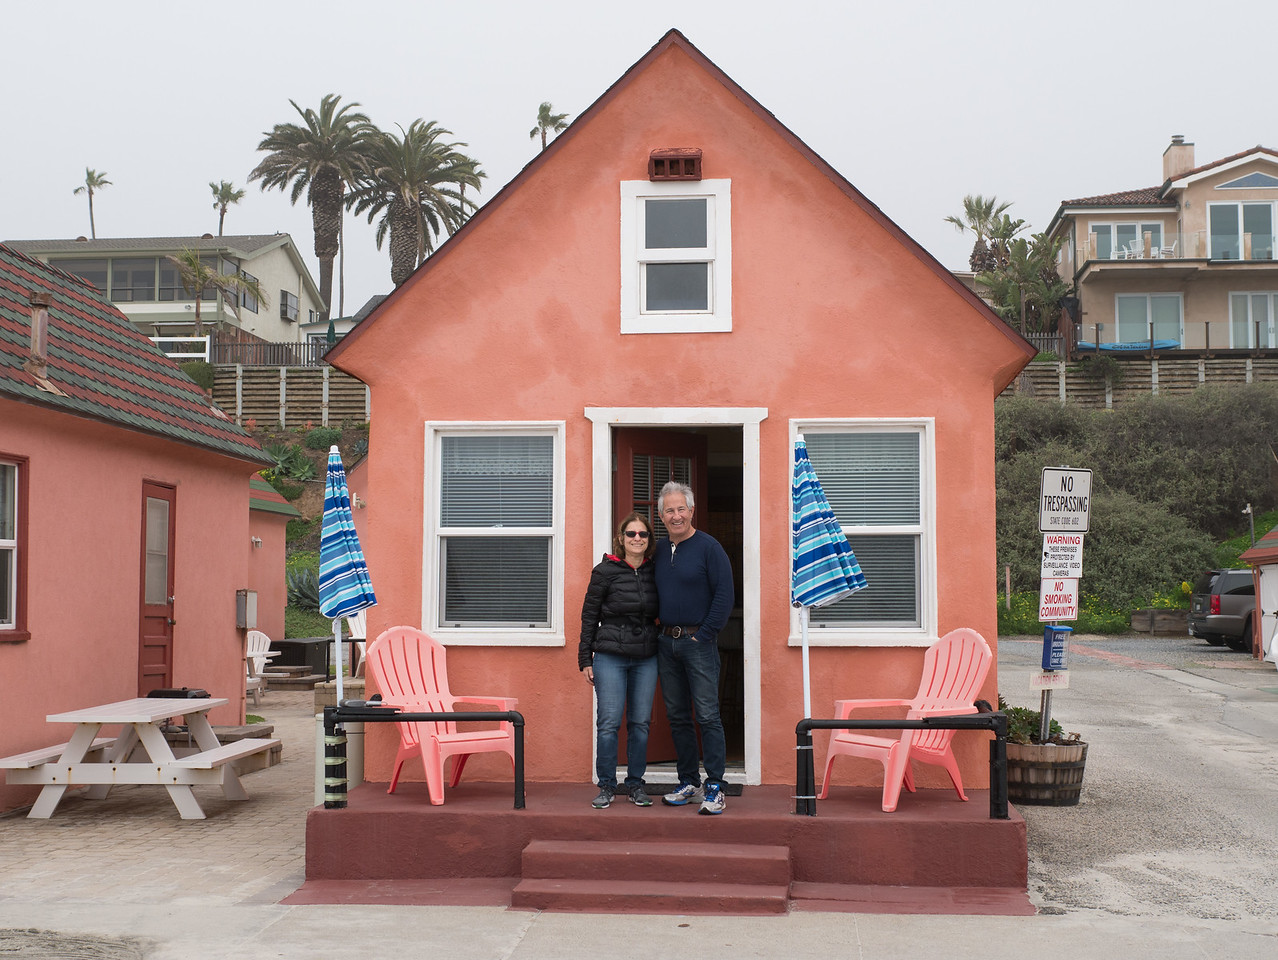 Eva and Steve in front of the historic tiny house on the Strand